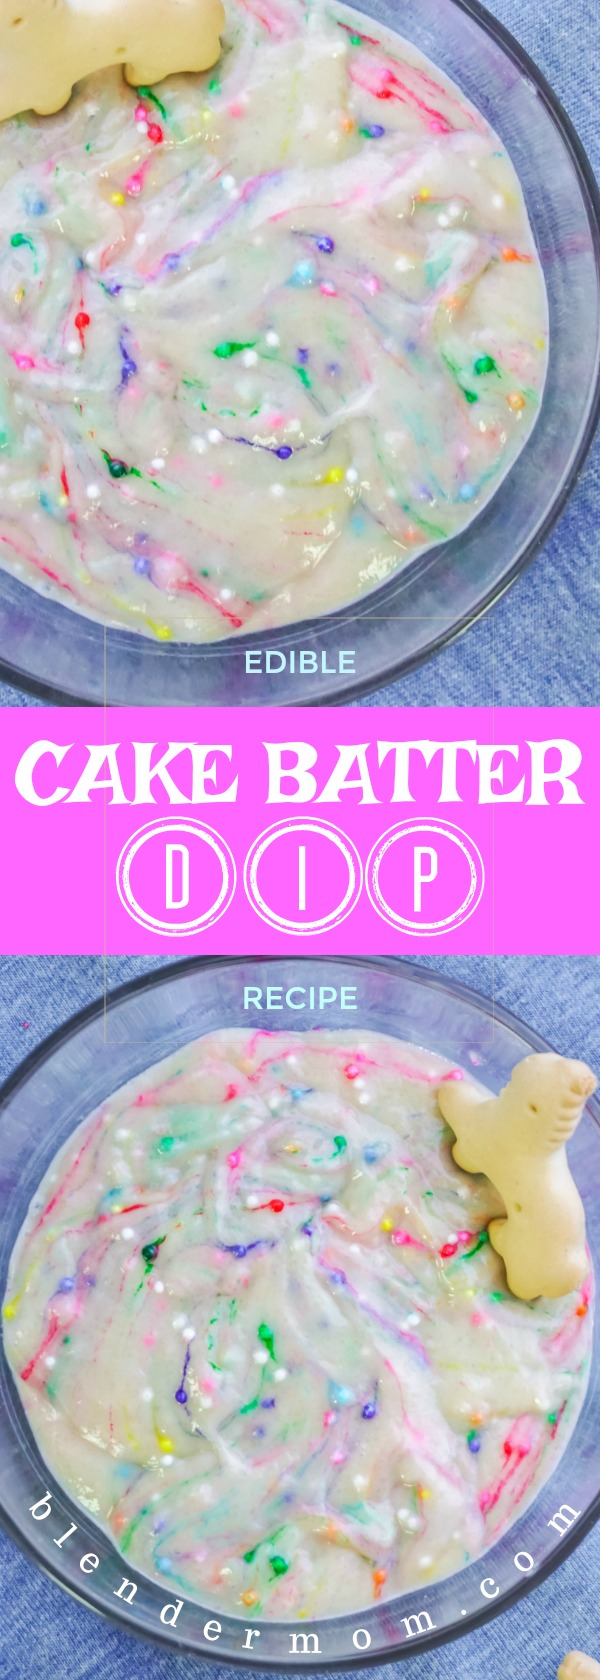 edible cake batter dip recipe